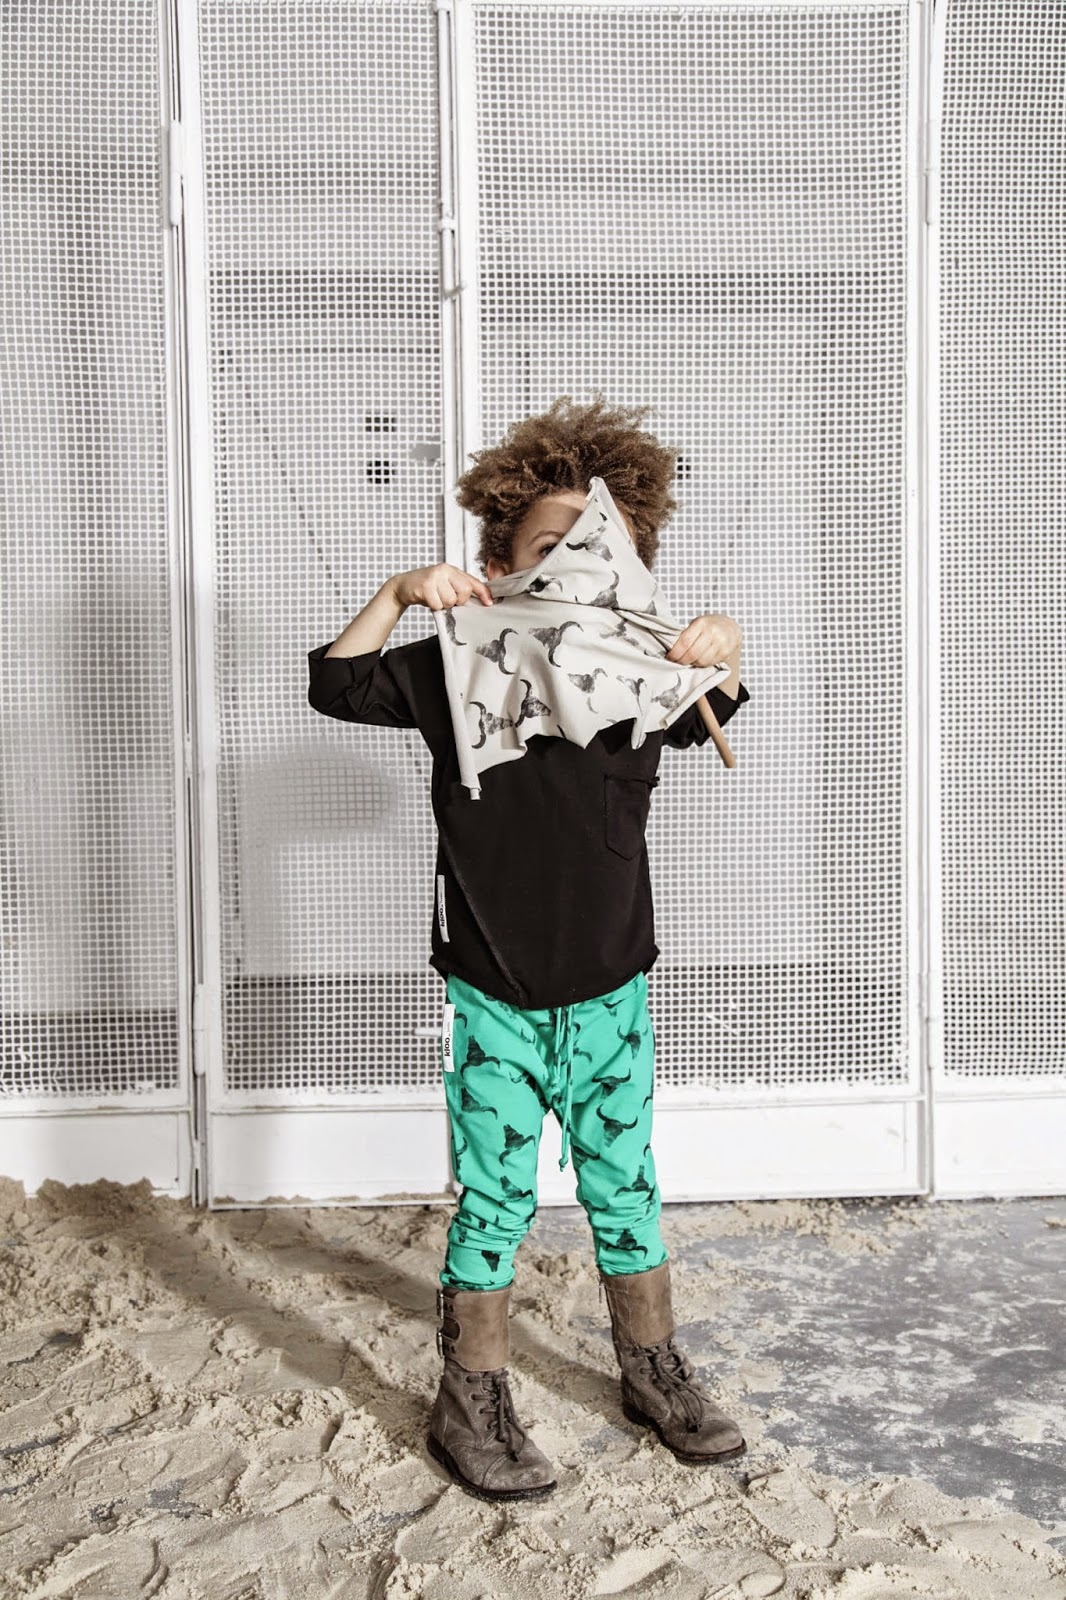 Kloo by Booso - Polish kids fashion spring-summer 2015 - turquoise bull's head